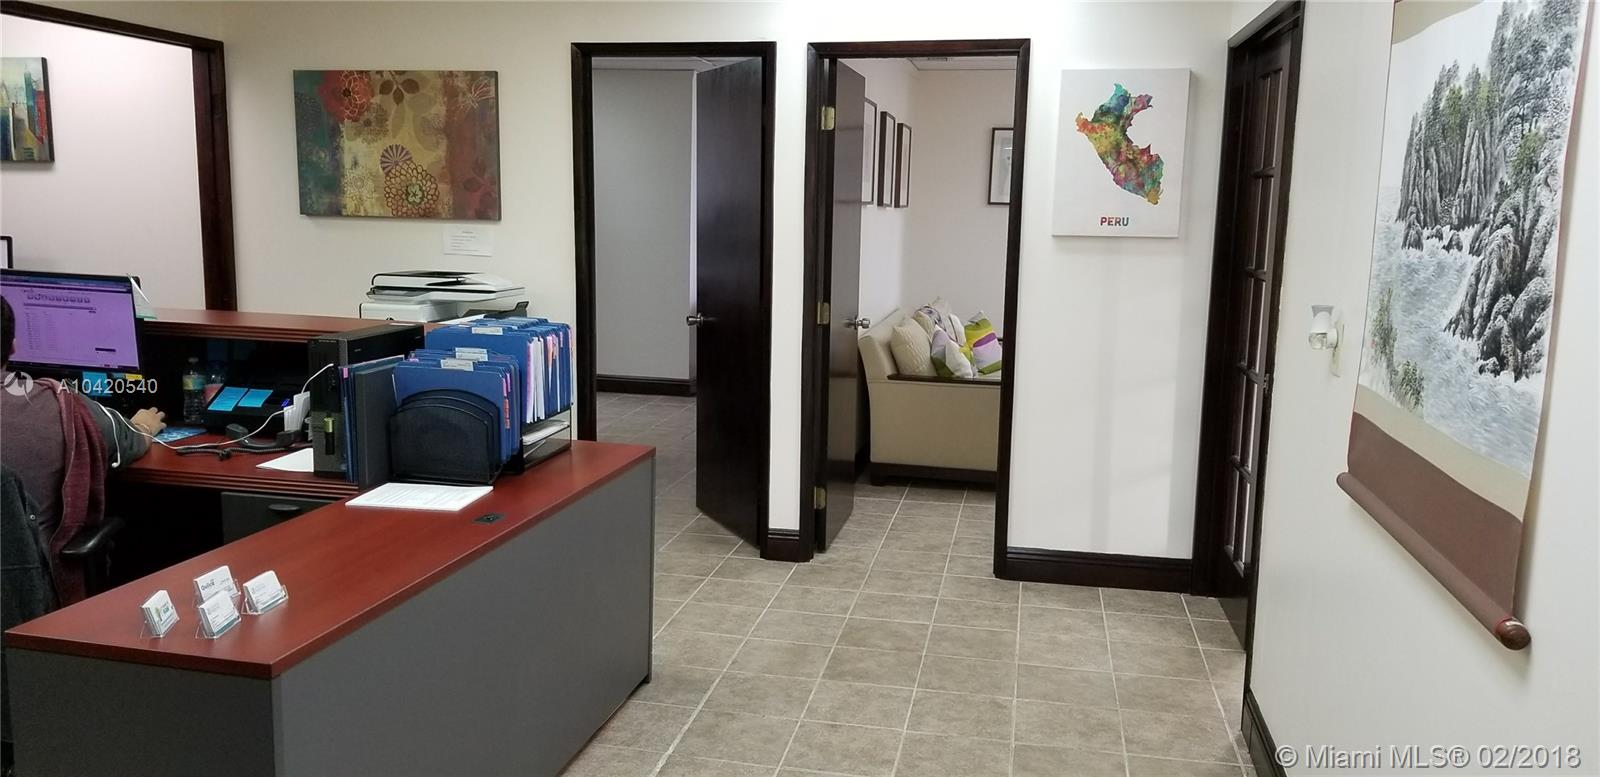 12955 Biscayne Blvd # 328, North Miami, Florida 33181, ,Commercial Sale,For Sale,12955 Biscayne Blvd # 328,A10420540